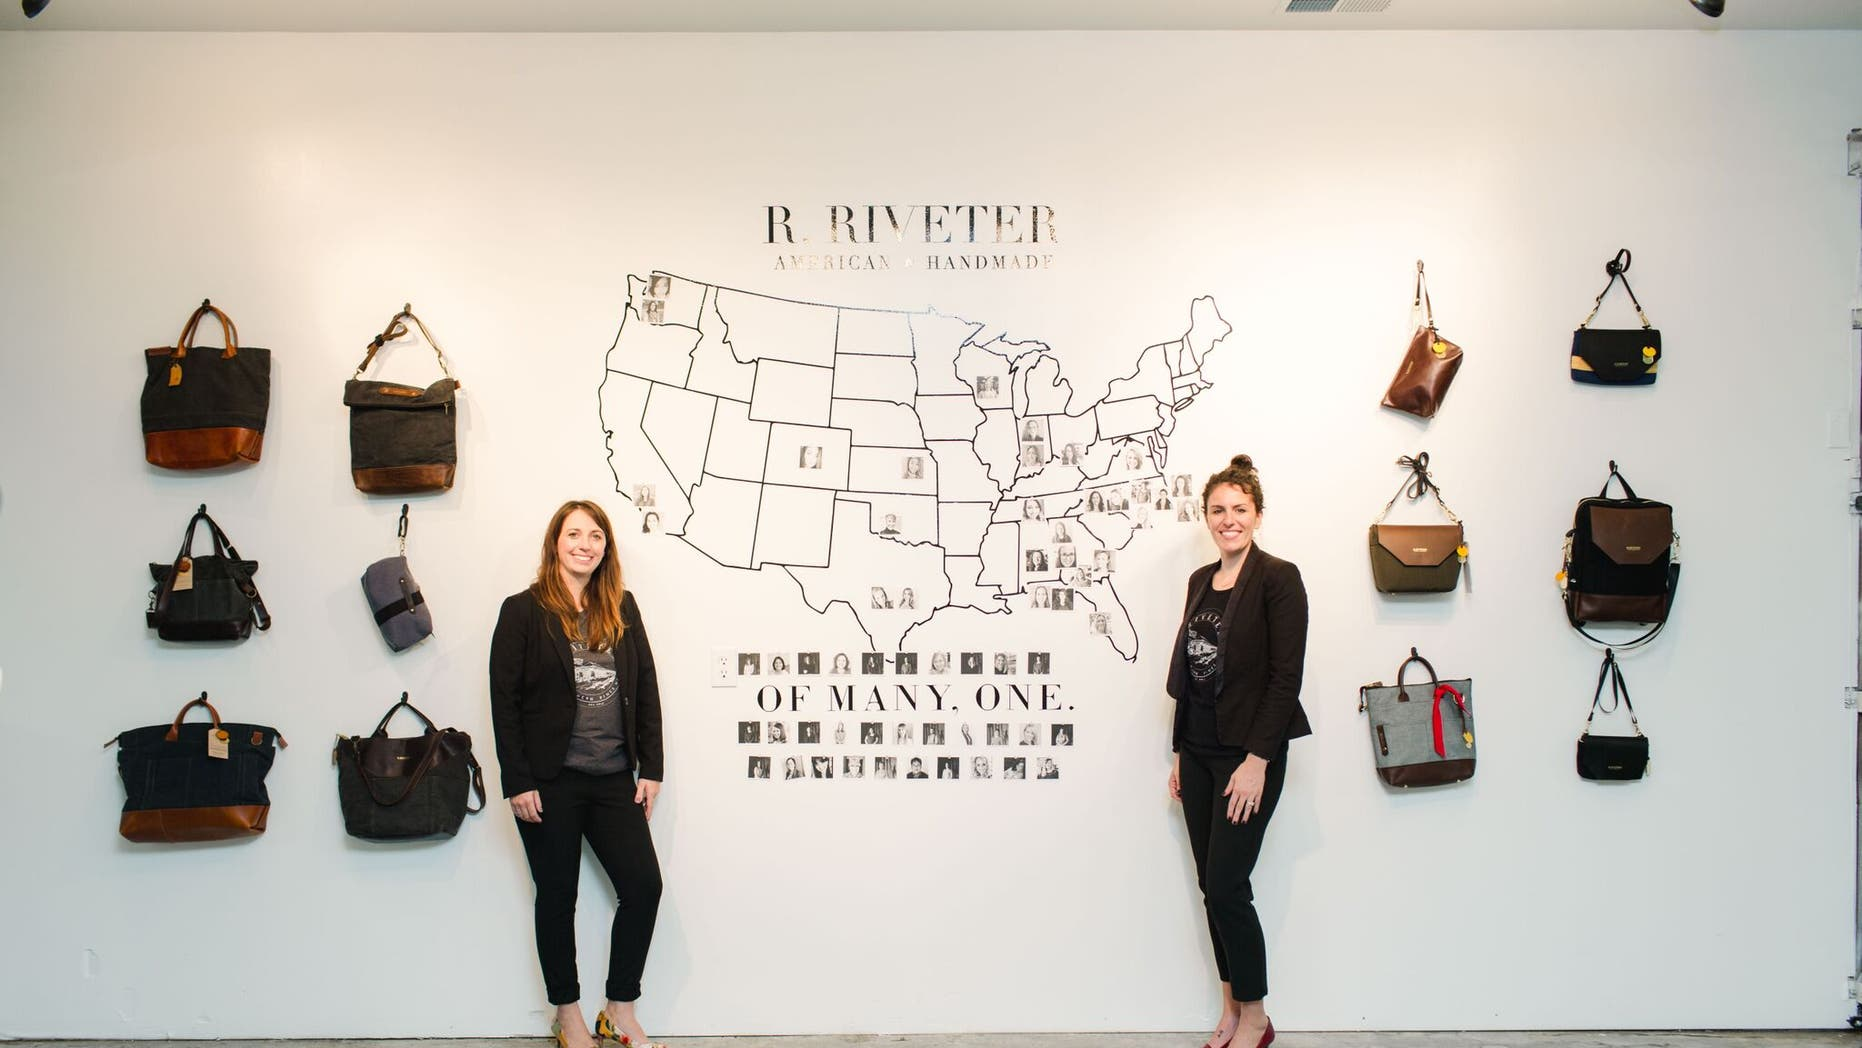 The founders of R. Riveter, Lisa Bradley (L) and Cameron Cruse (R) with a selection of their products. Credit: R. Riveter